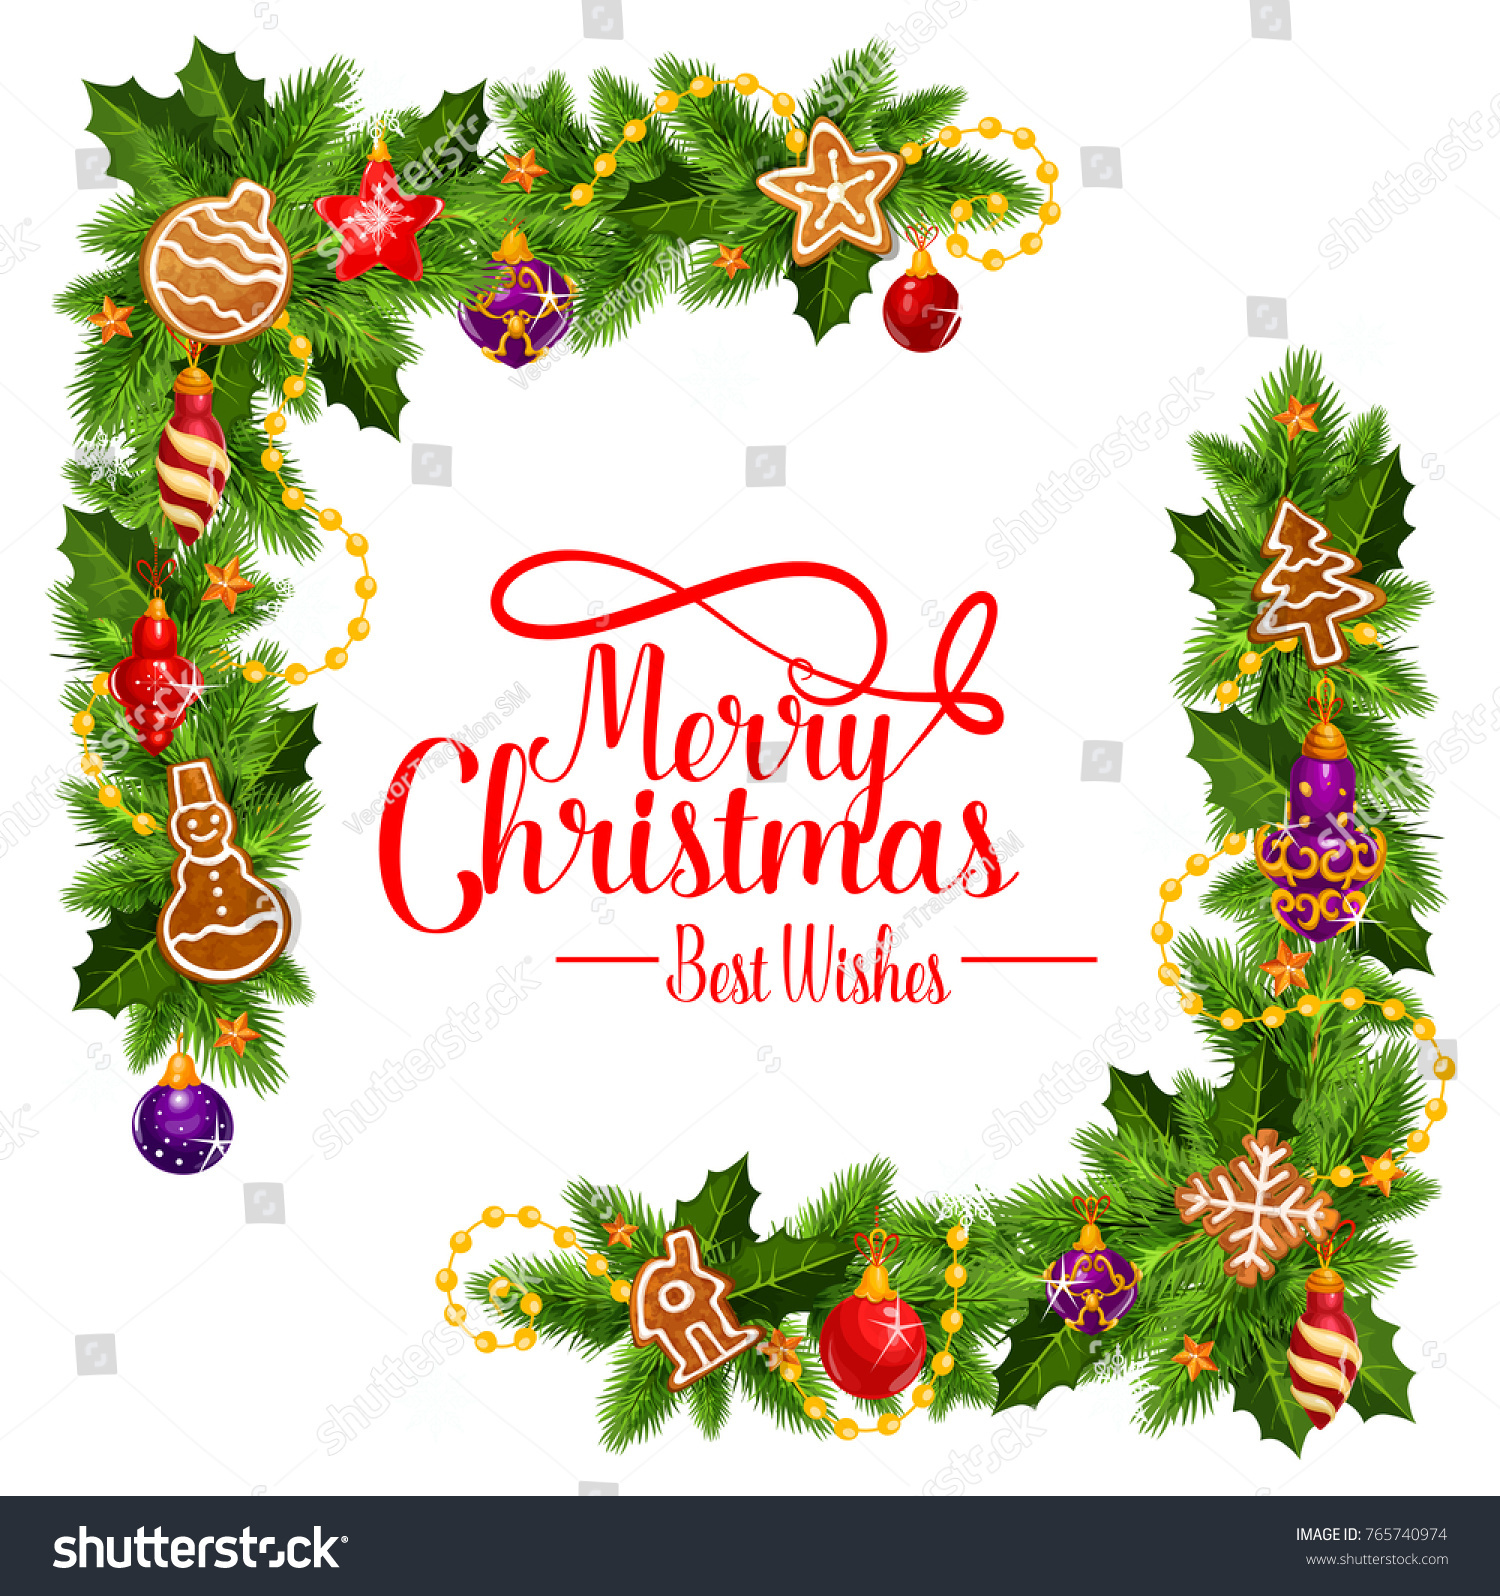 Merry Christmas Best Wishes Frame Pie Stock Vector (Royalty Free ...